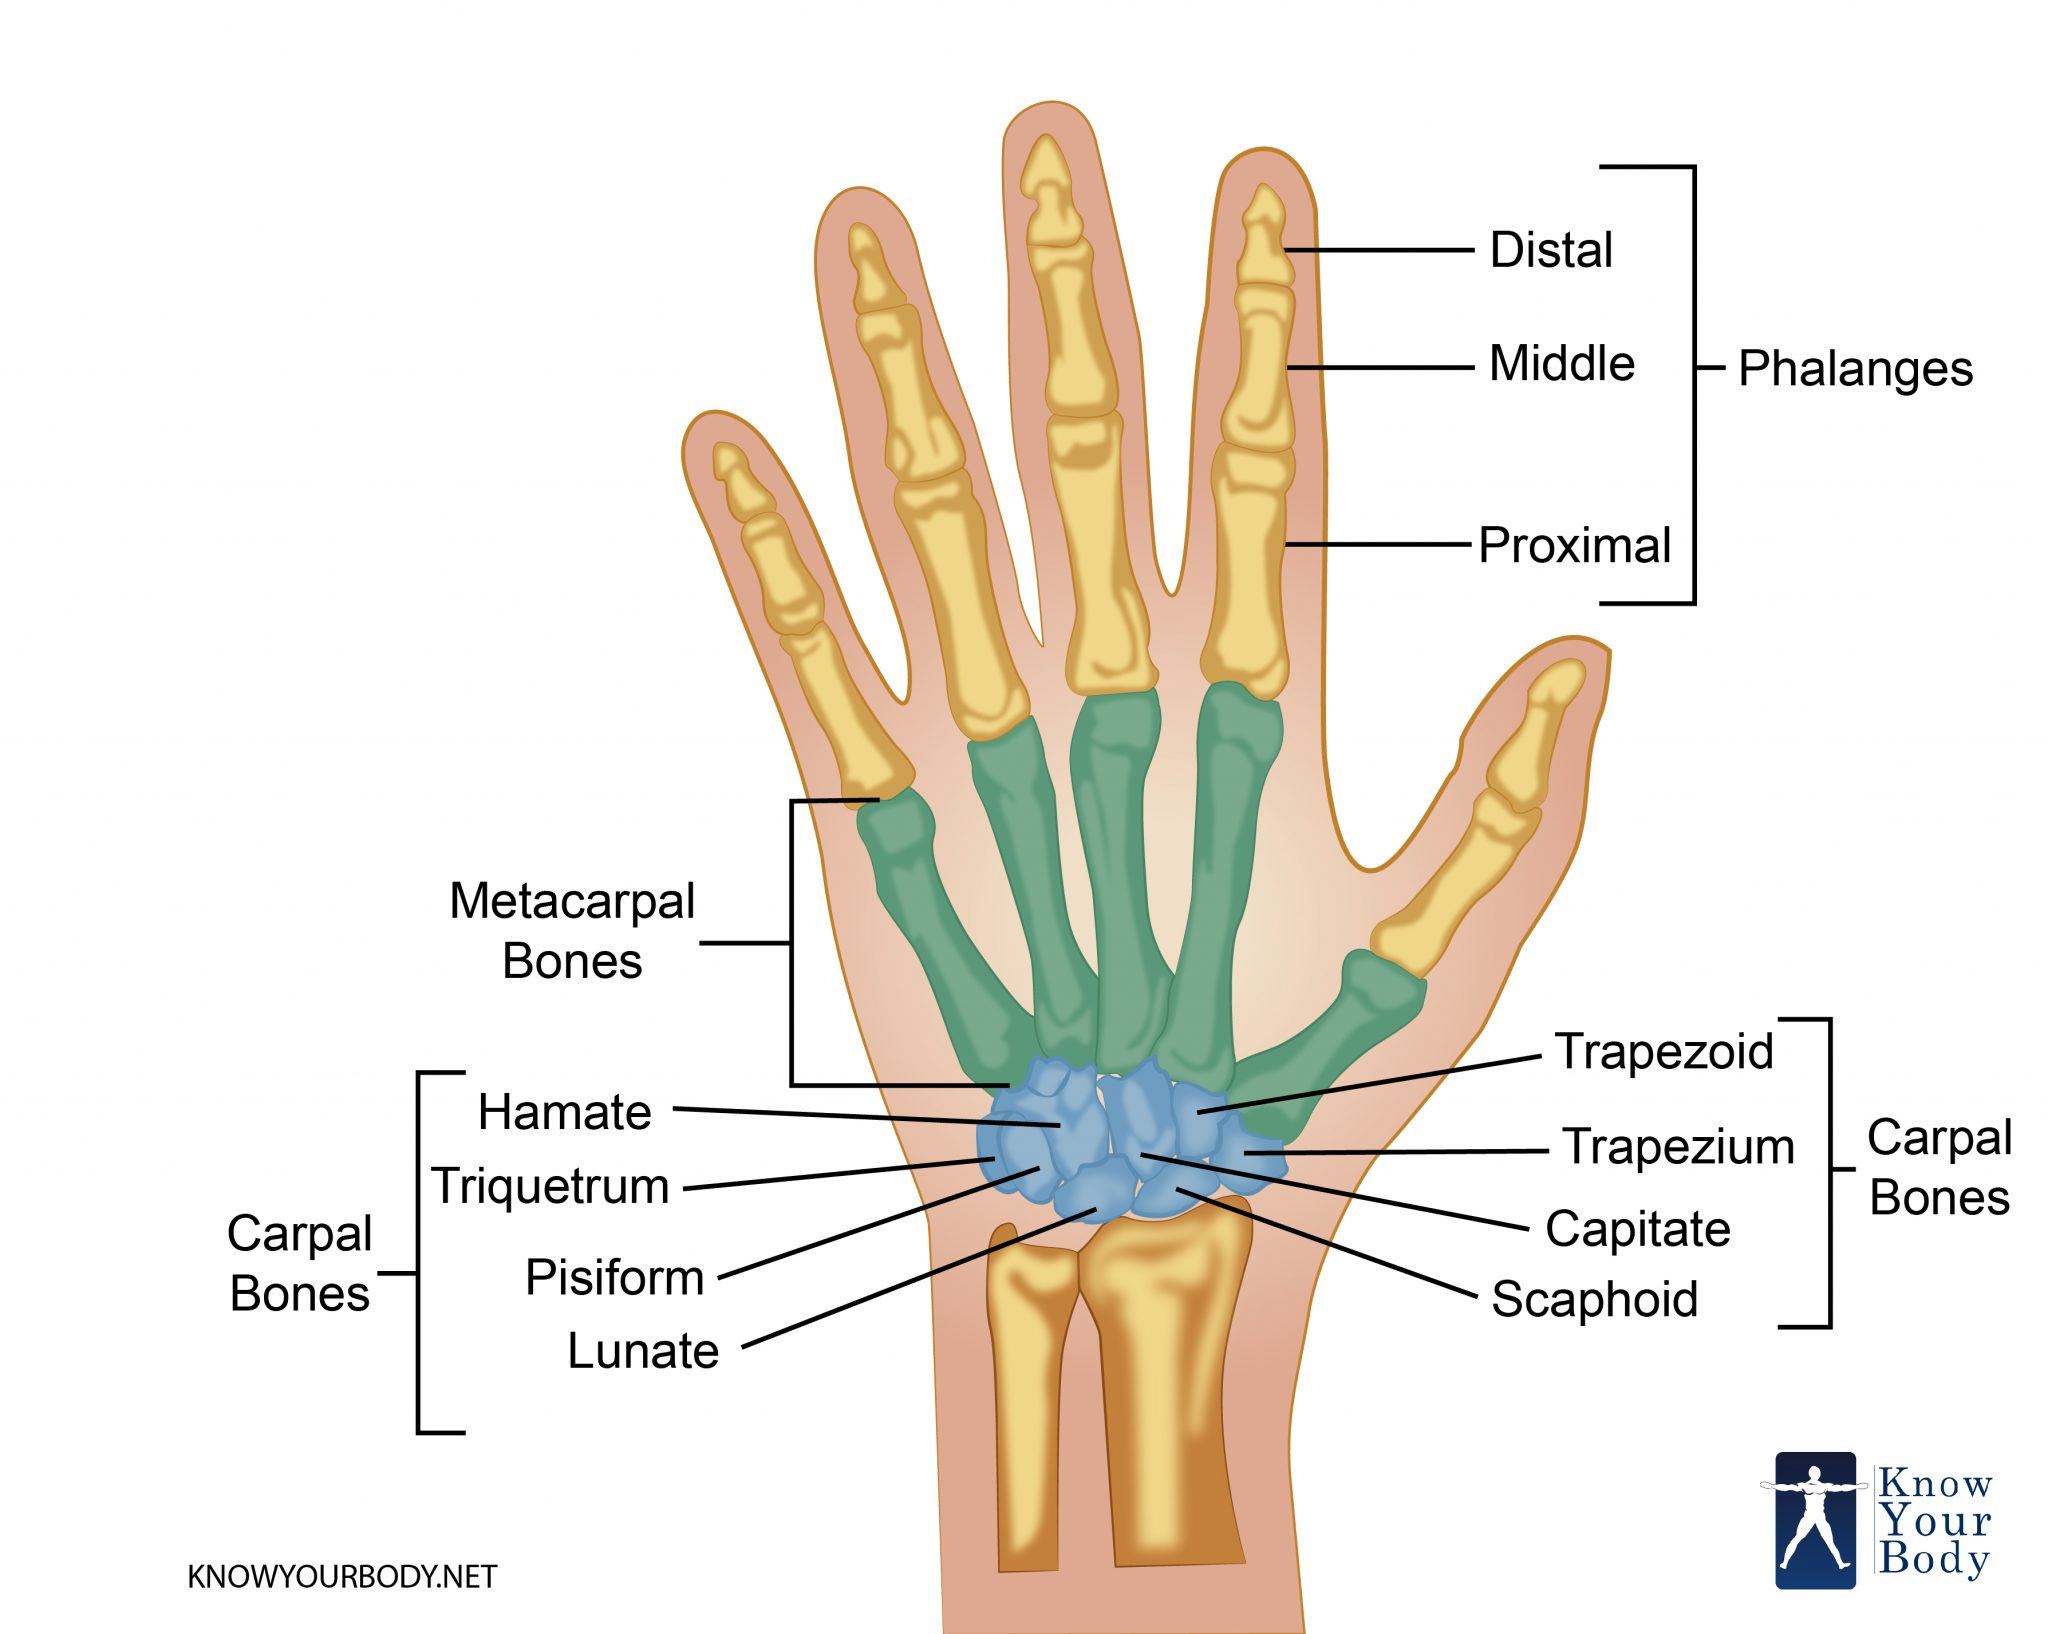 Hand Bones - Anatomy, Structure and Diagram